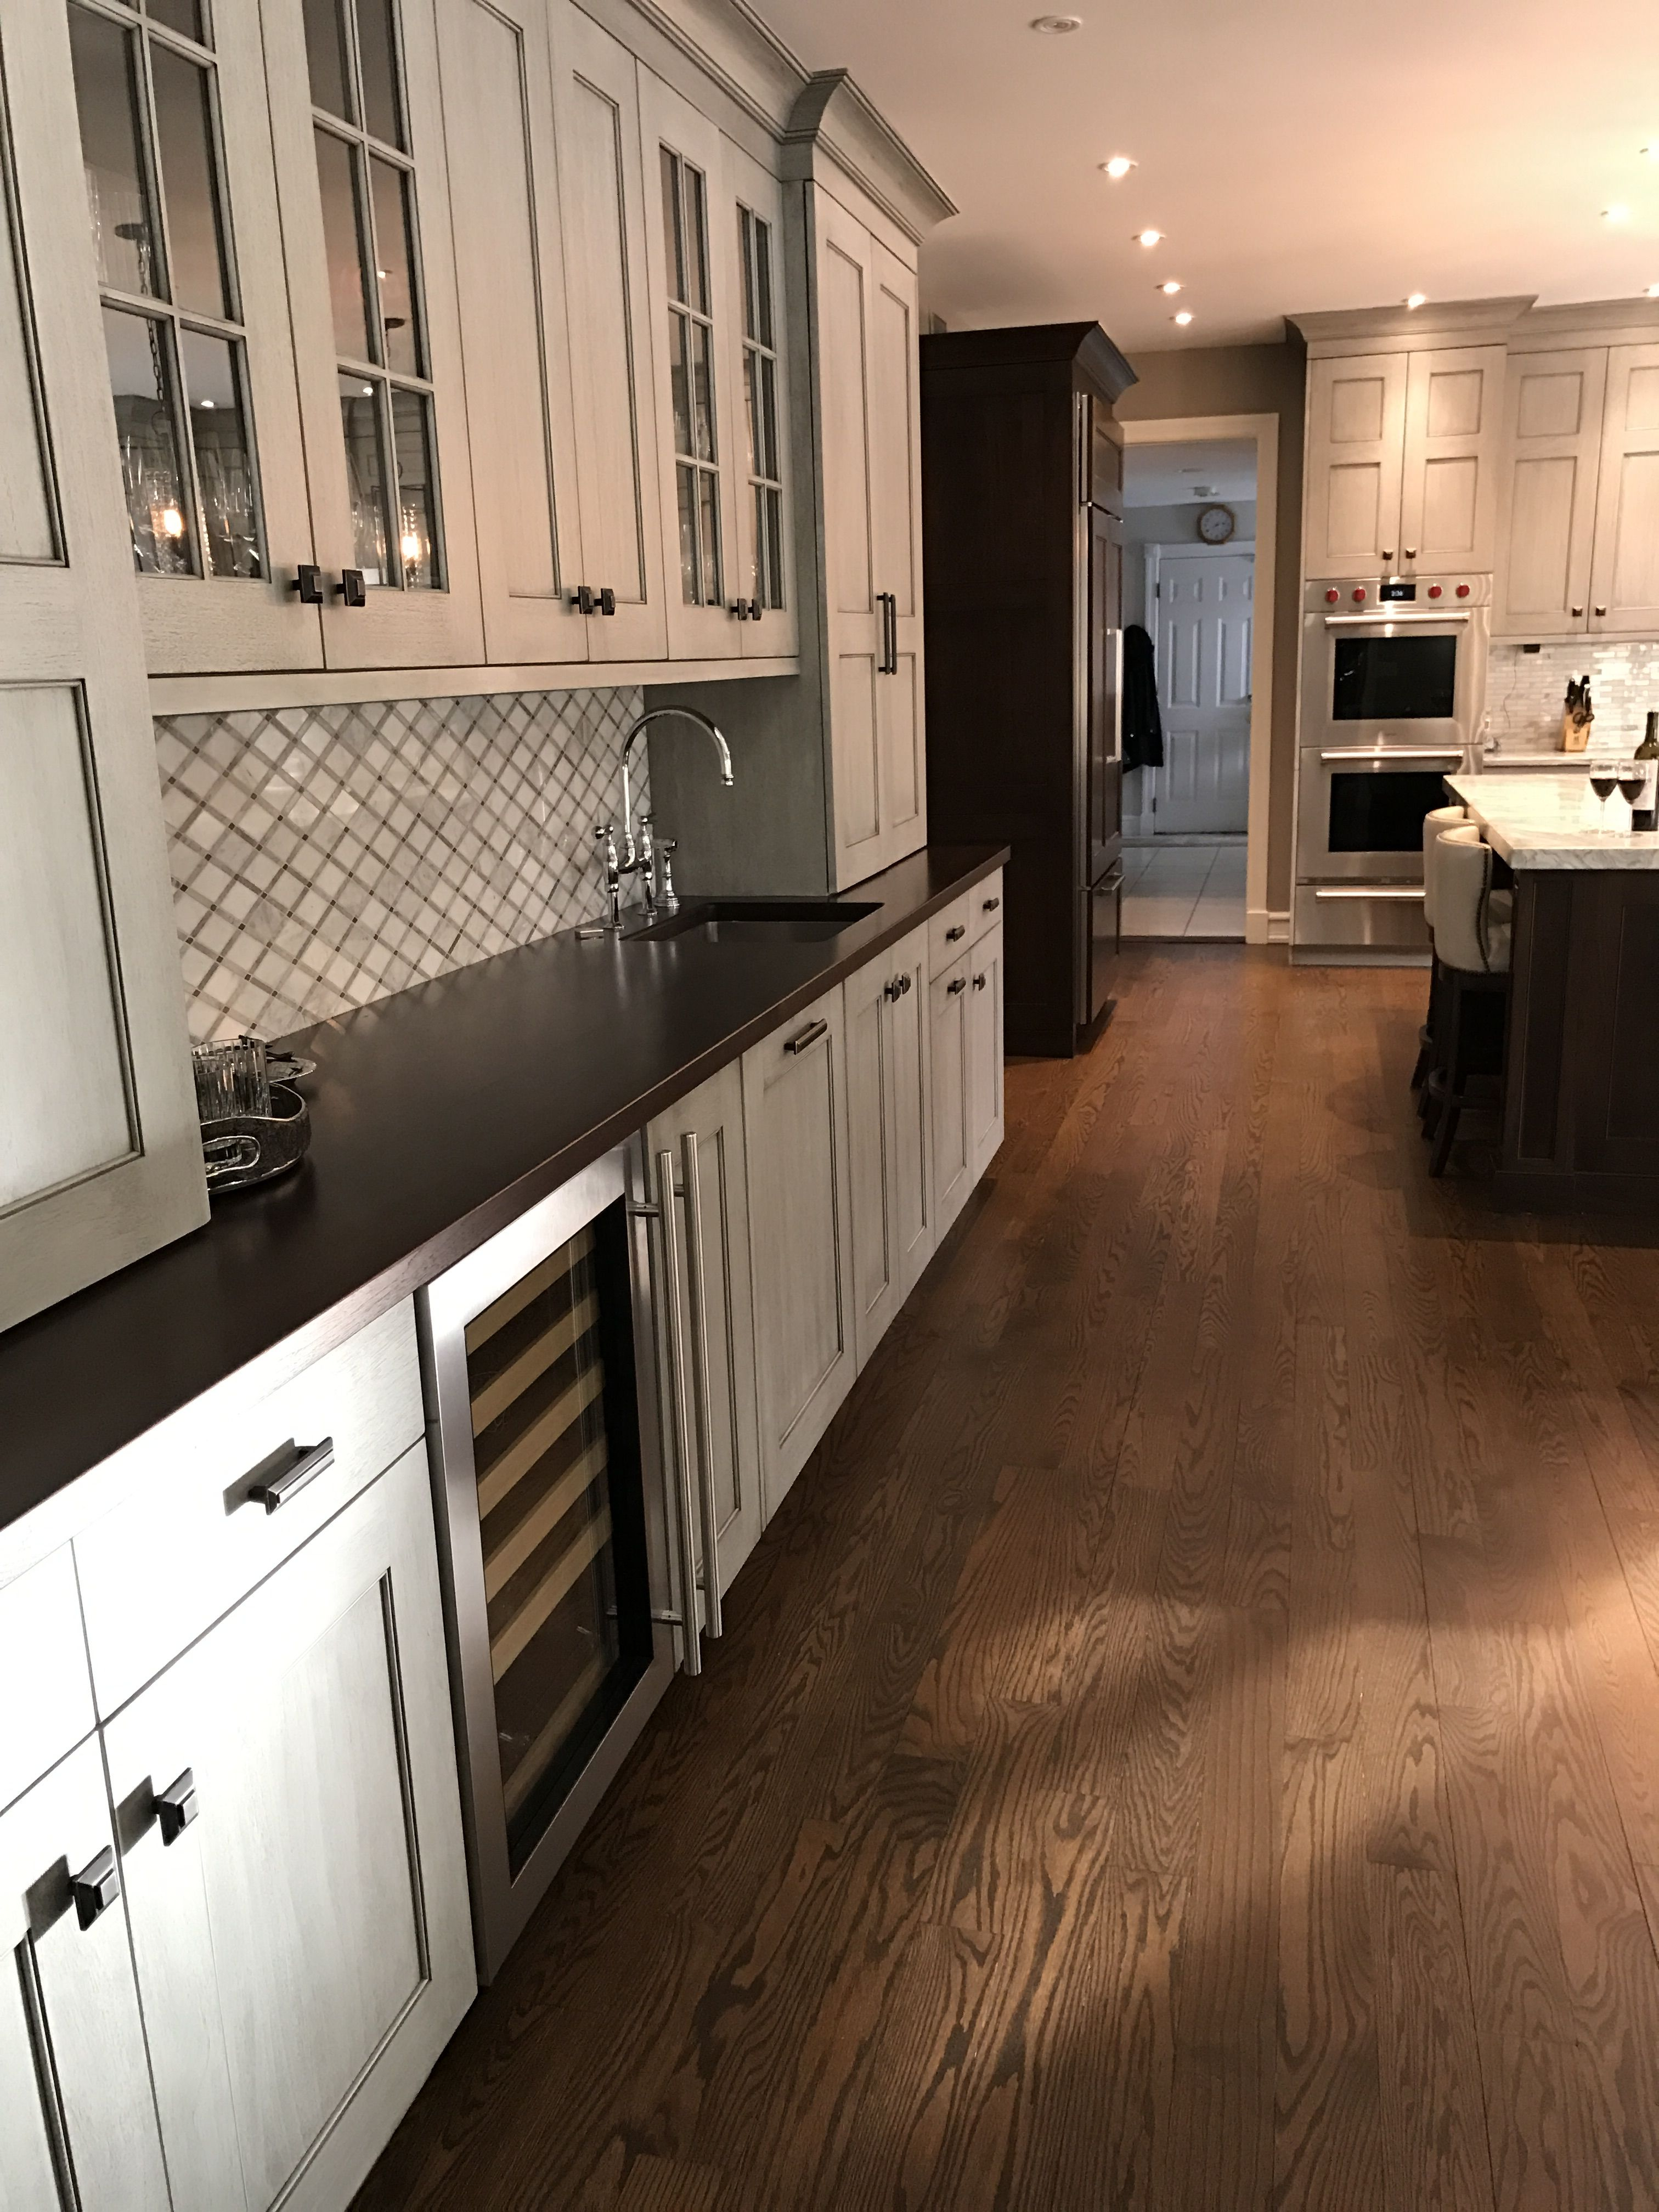 pin by elite kitchen & bath on long island & nyc rutt kitchens